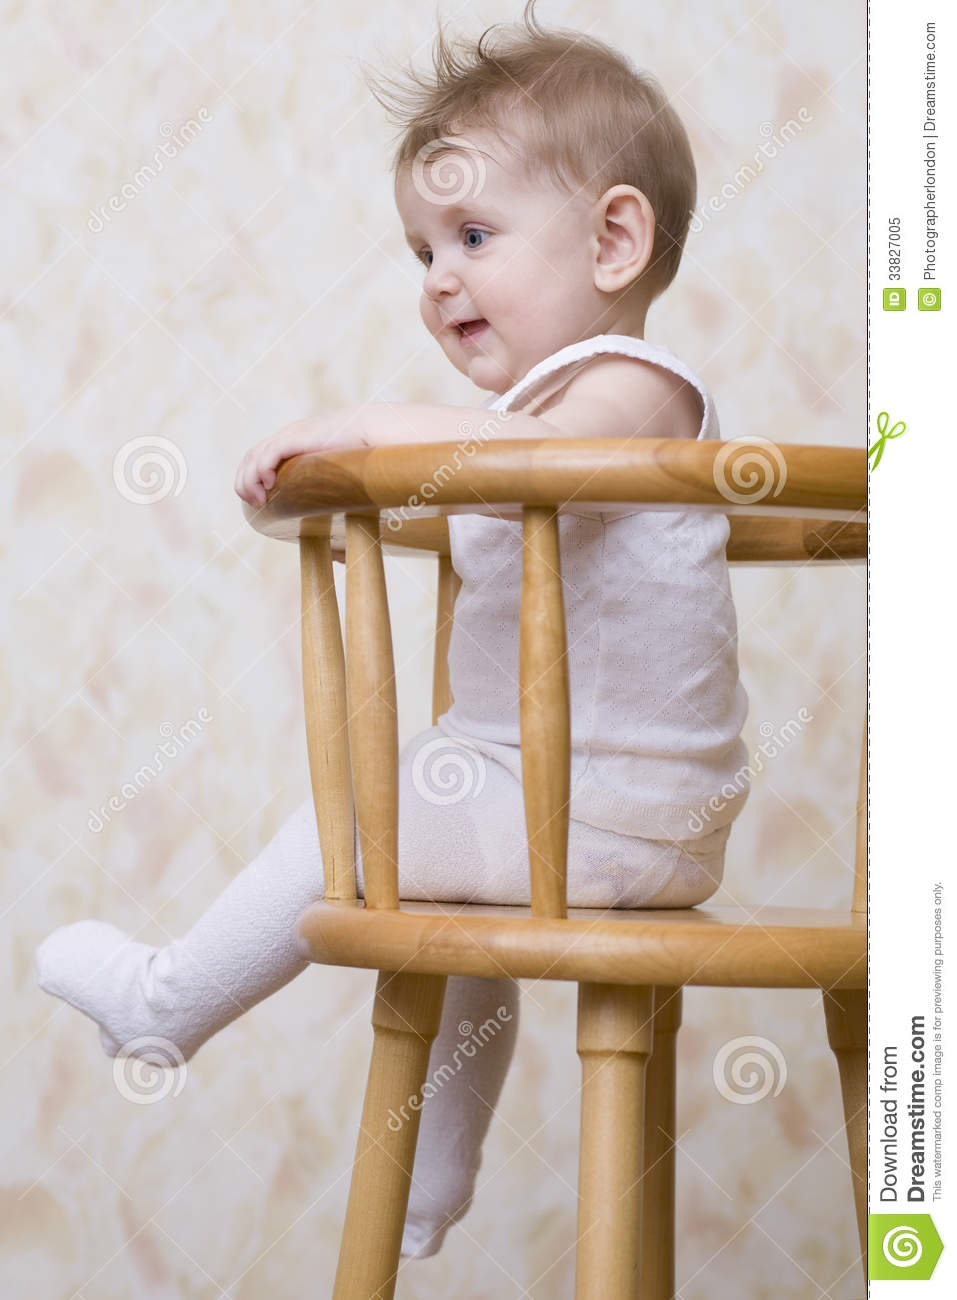 Playful baby boy sitting on high chair royalty free stock for Toddler sitting chair